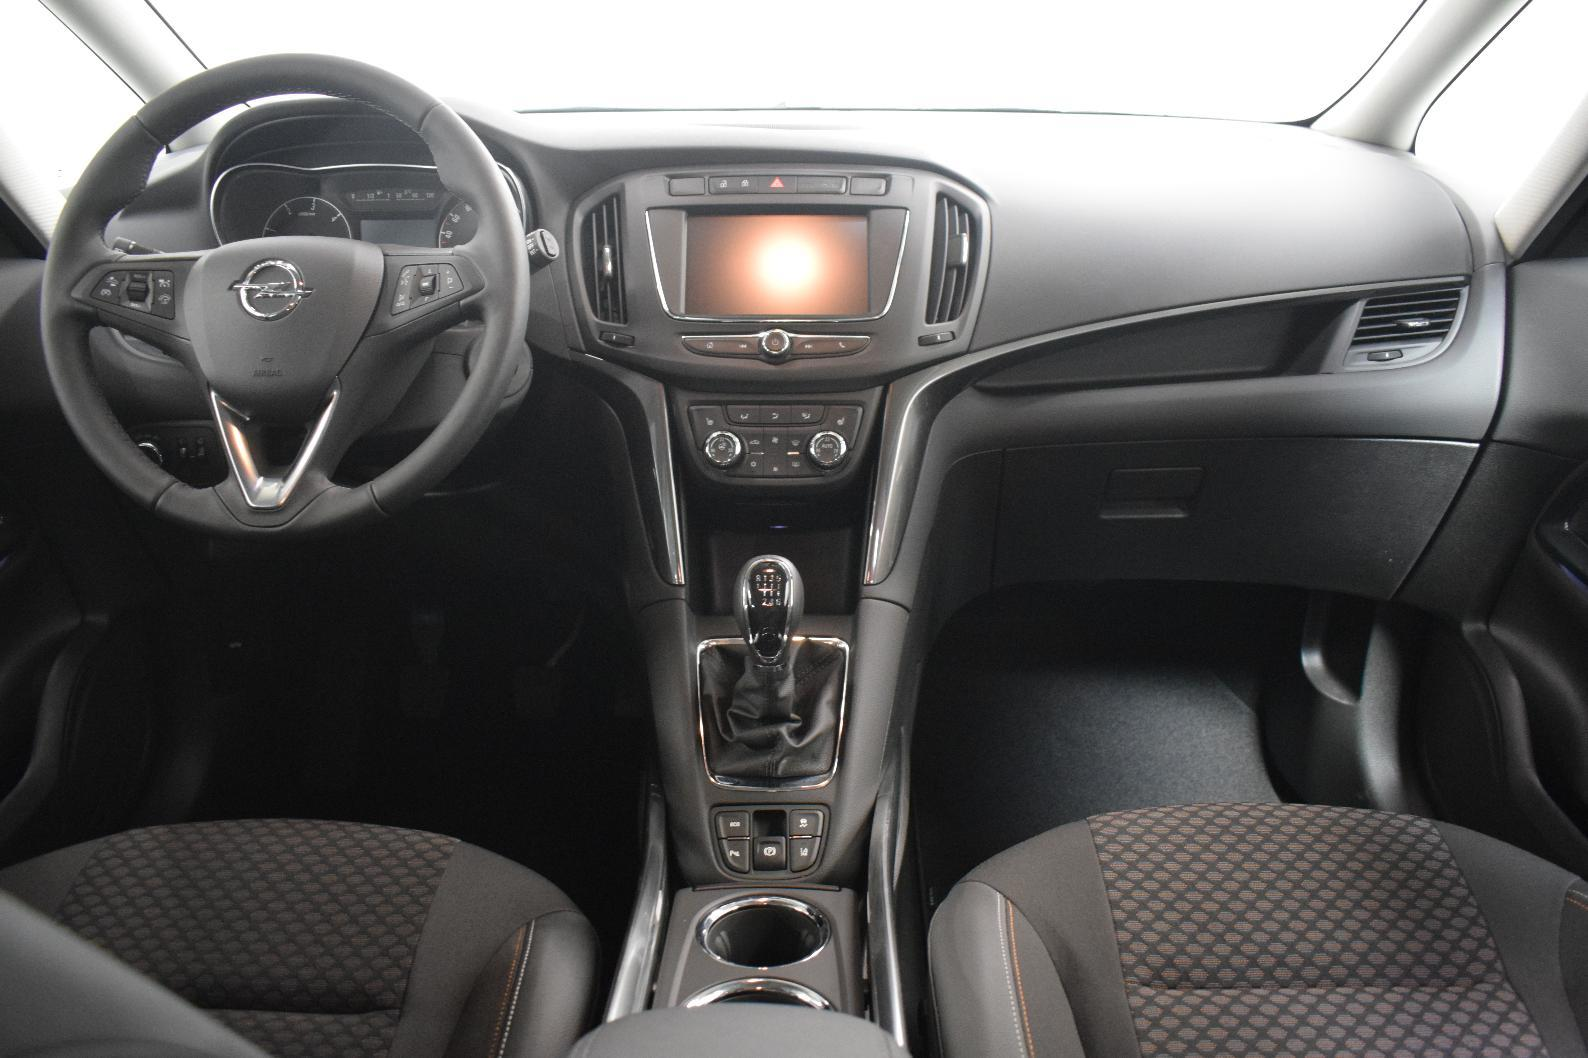 OPEL ZAFIRA 1.6 CDTI 136 ch Innovation